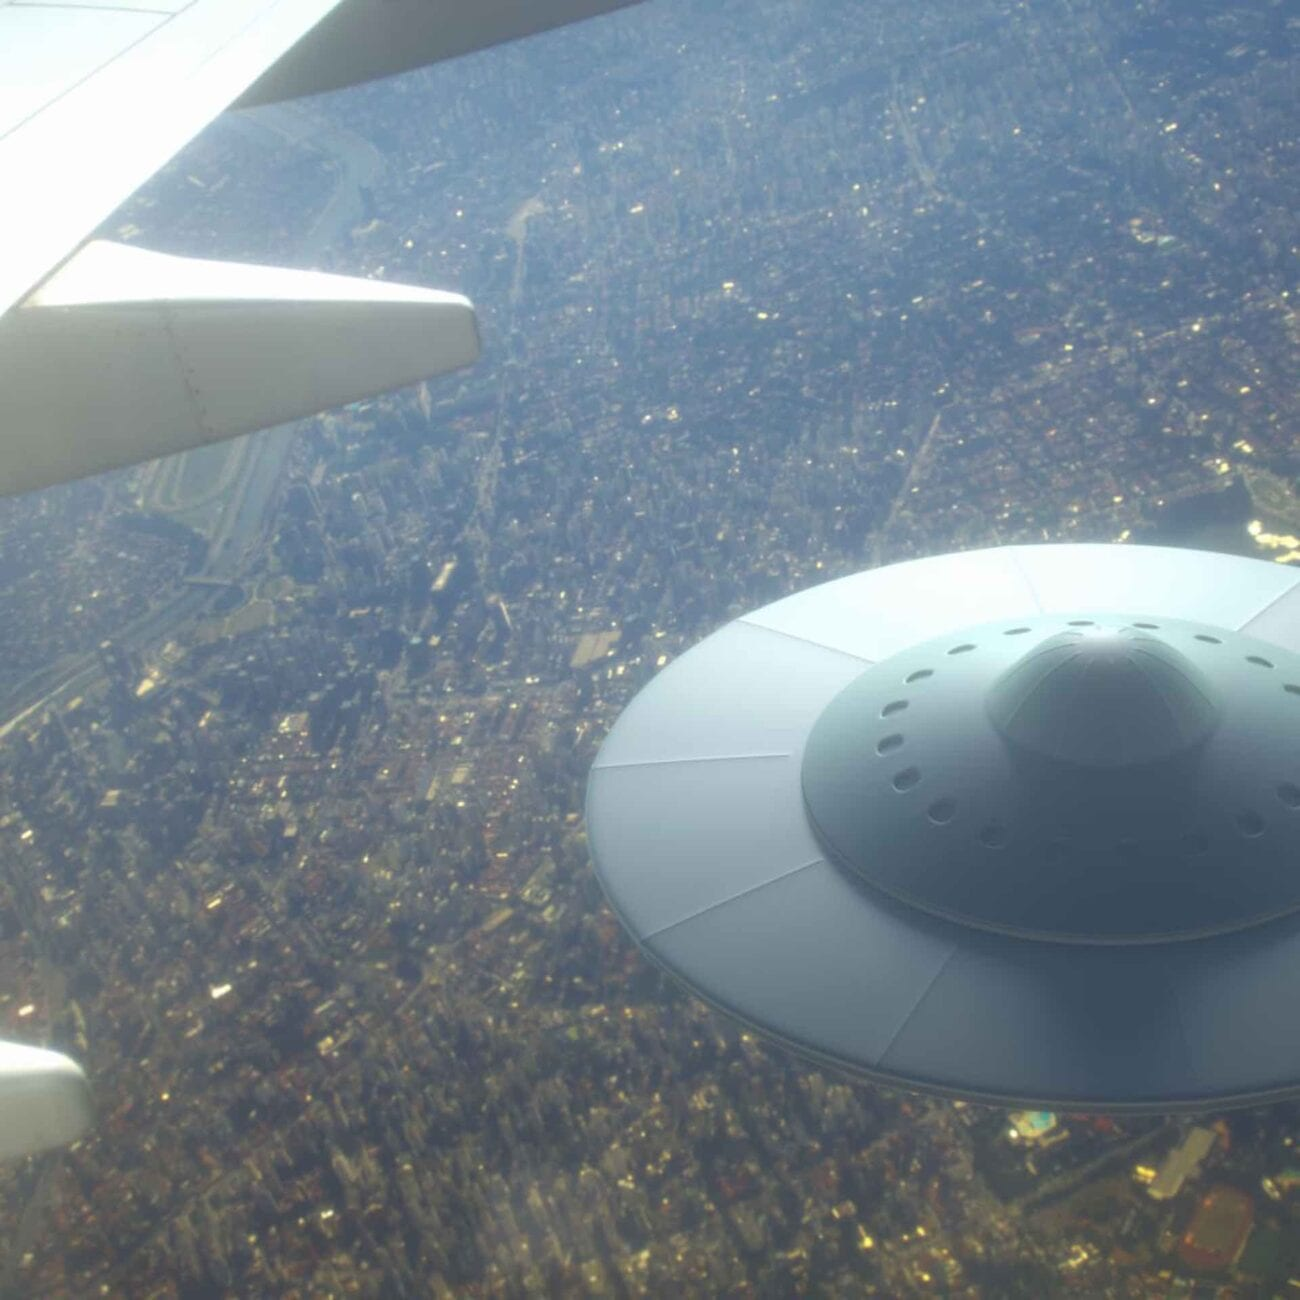 Thse crazy UFO sightings in the United States will have you wondering if maybe there really are aliens visiting our planet.